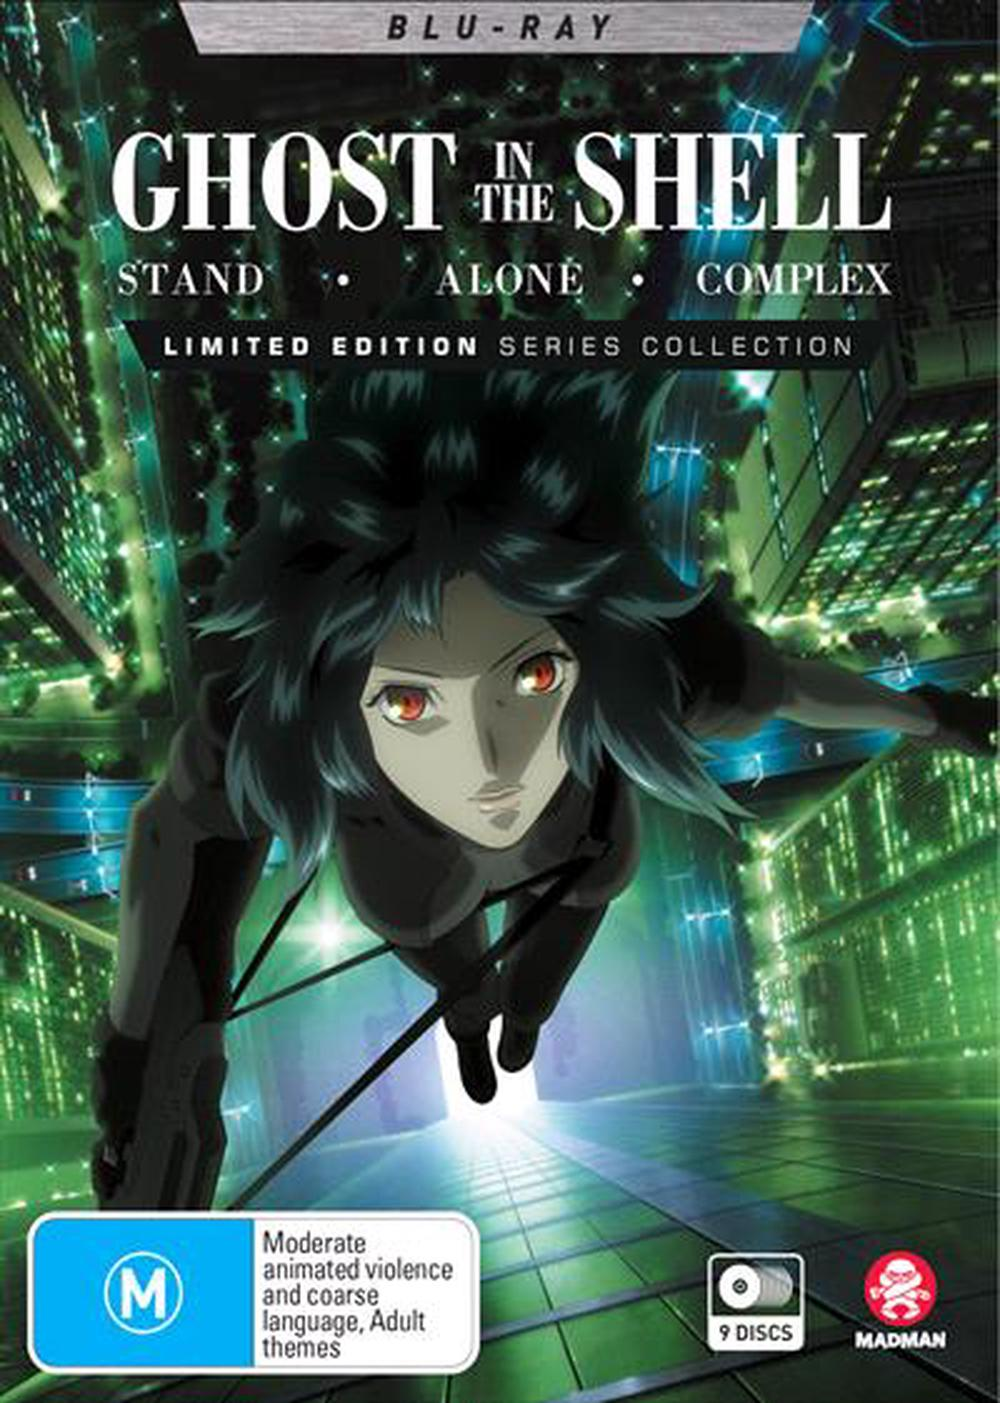 Ghost In The Shell Stand Alone Complex Limited Edition Complete Series Solid State Society Collection Blu Ray Buy Online At The Nile